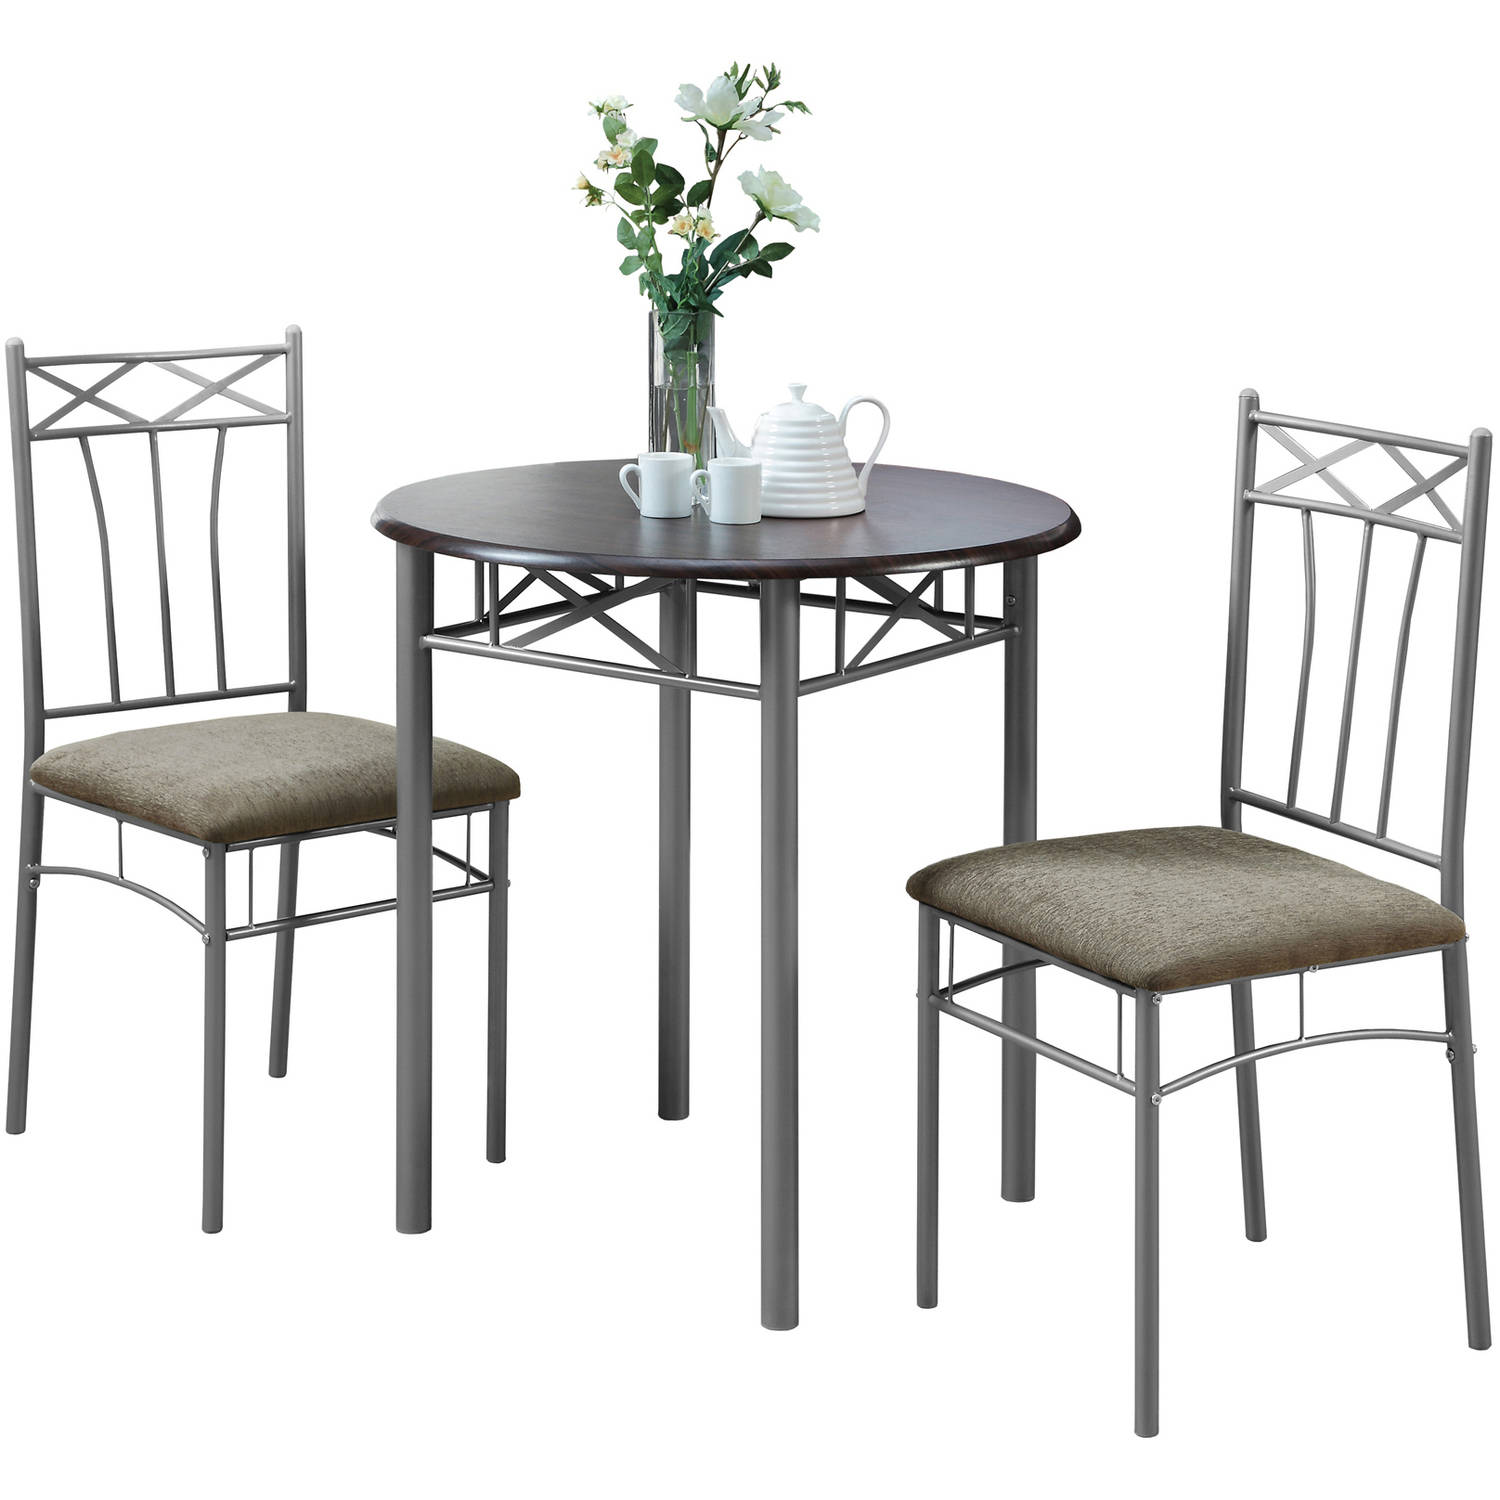 Etonnant Monarch Dining Set 3Pcs Set / Cappuccino / Silver Metal